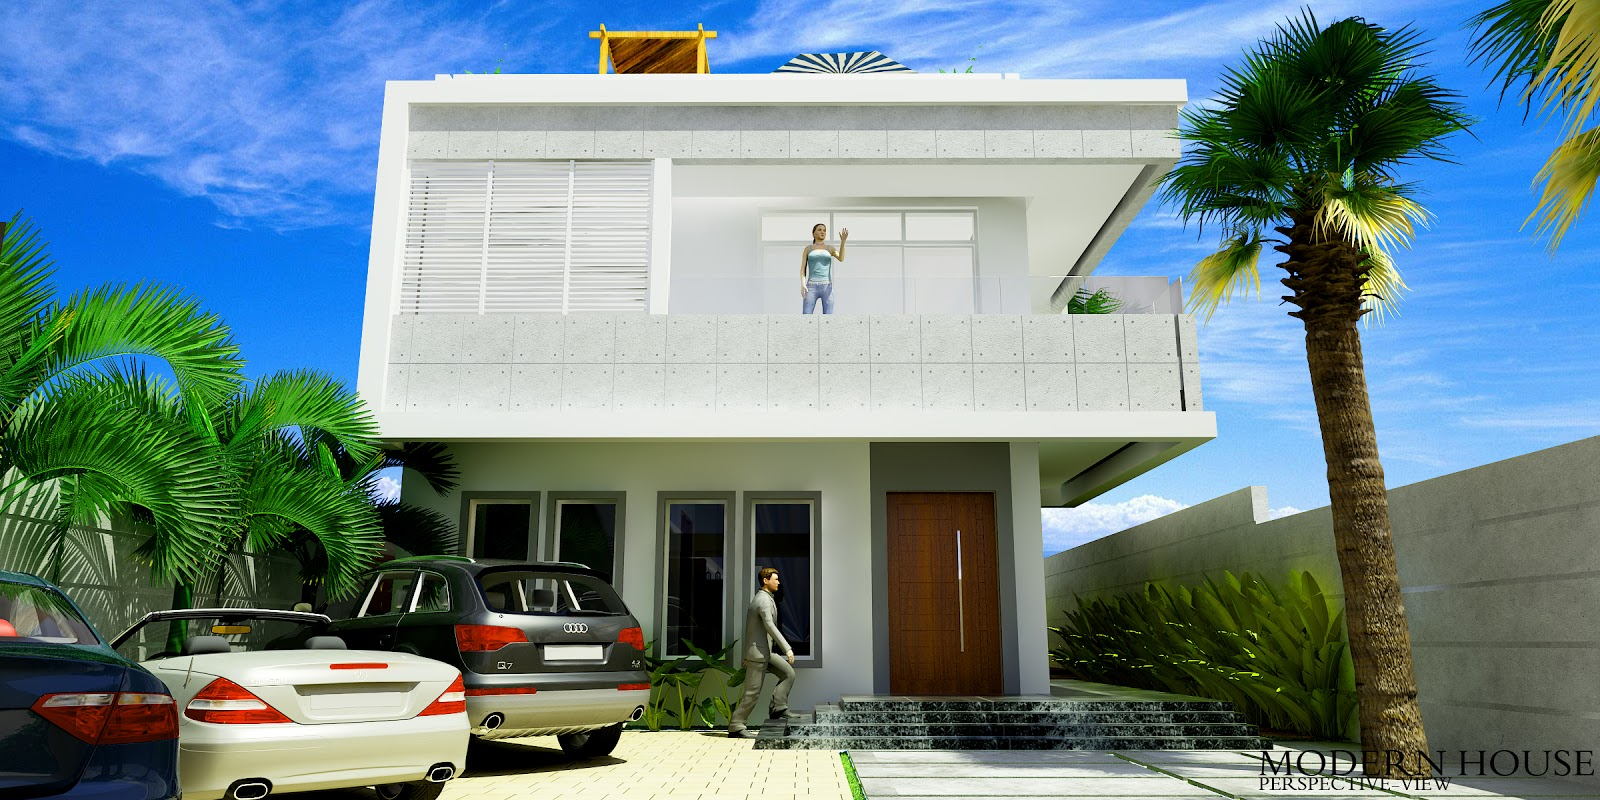 Home design company in cambodia cambodian architecture for Architecture khmer